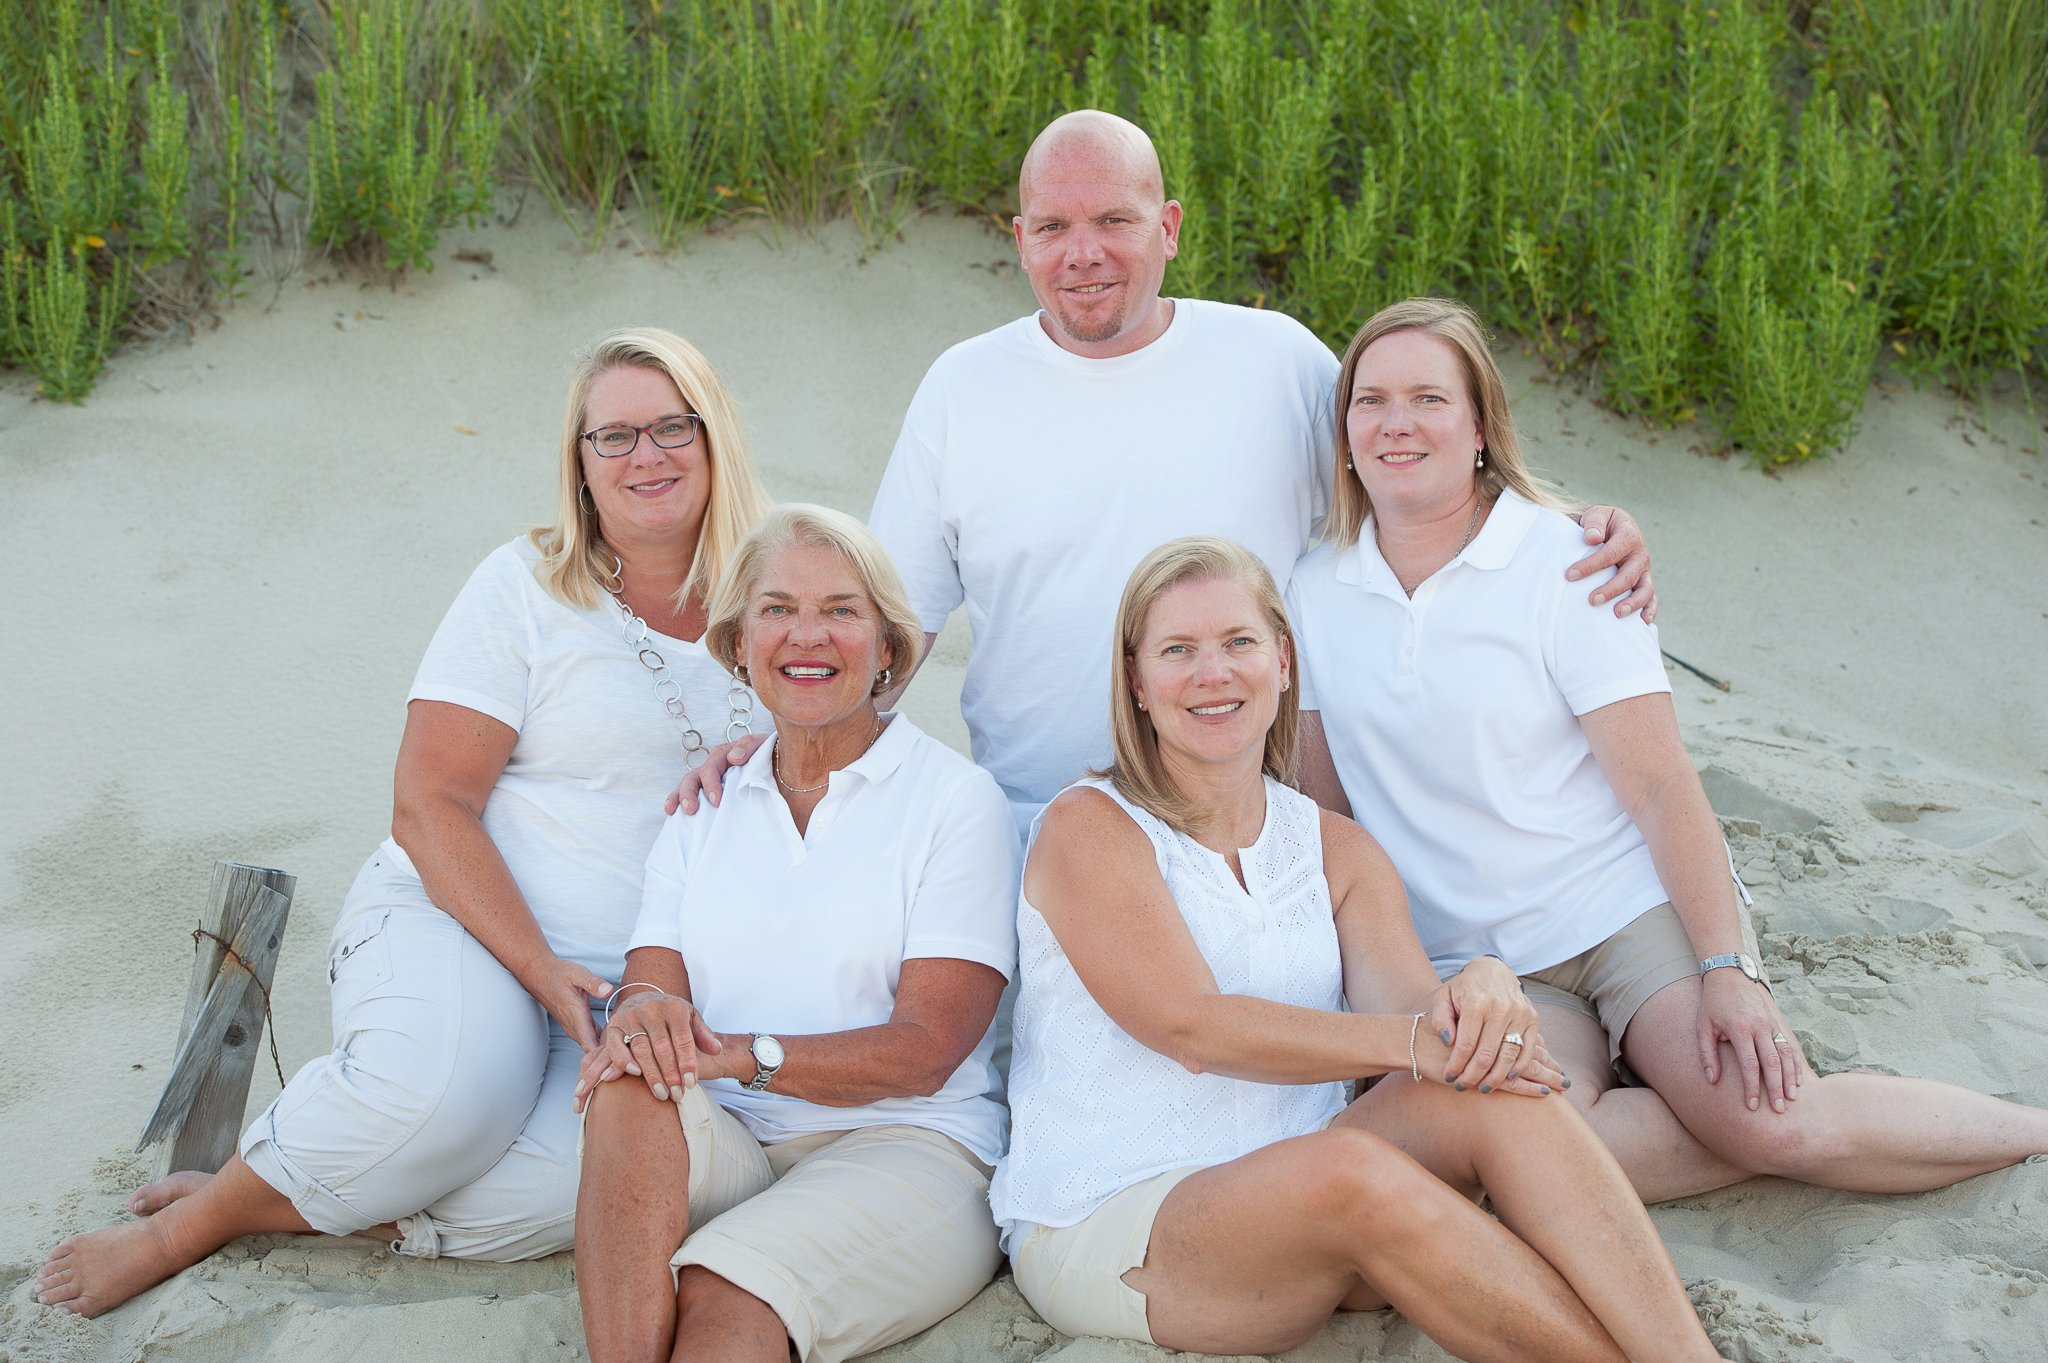 OBX Wedding Photographers - Highlights for the Wilson Family